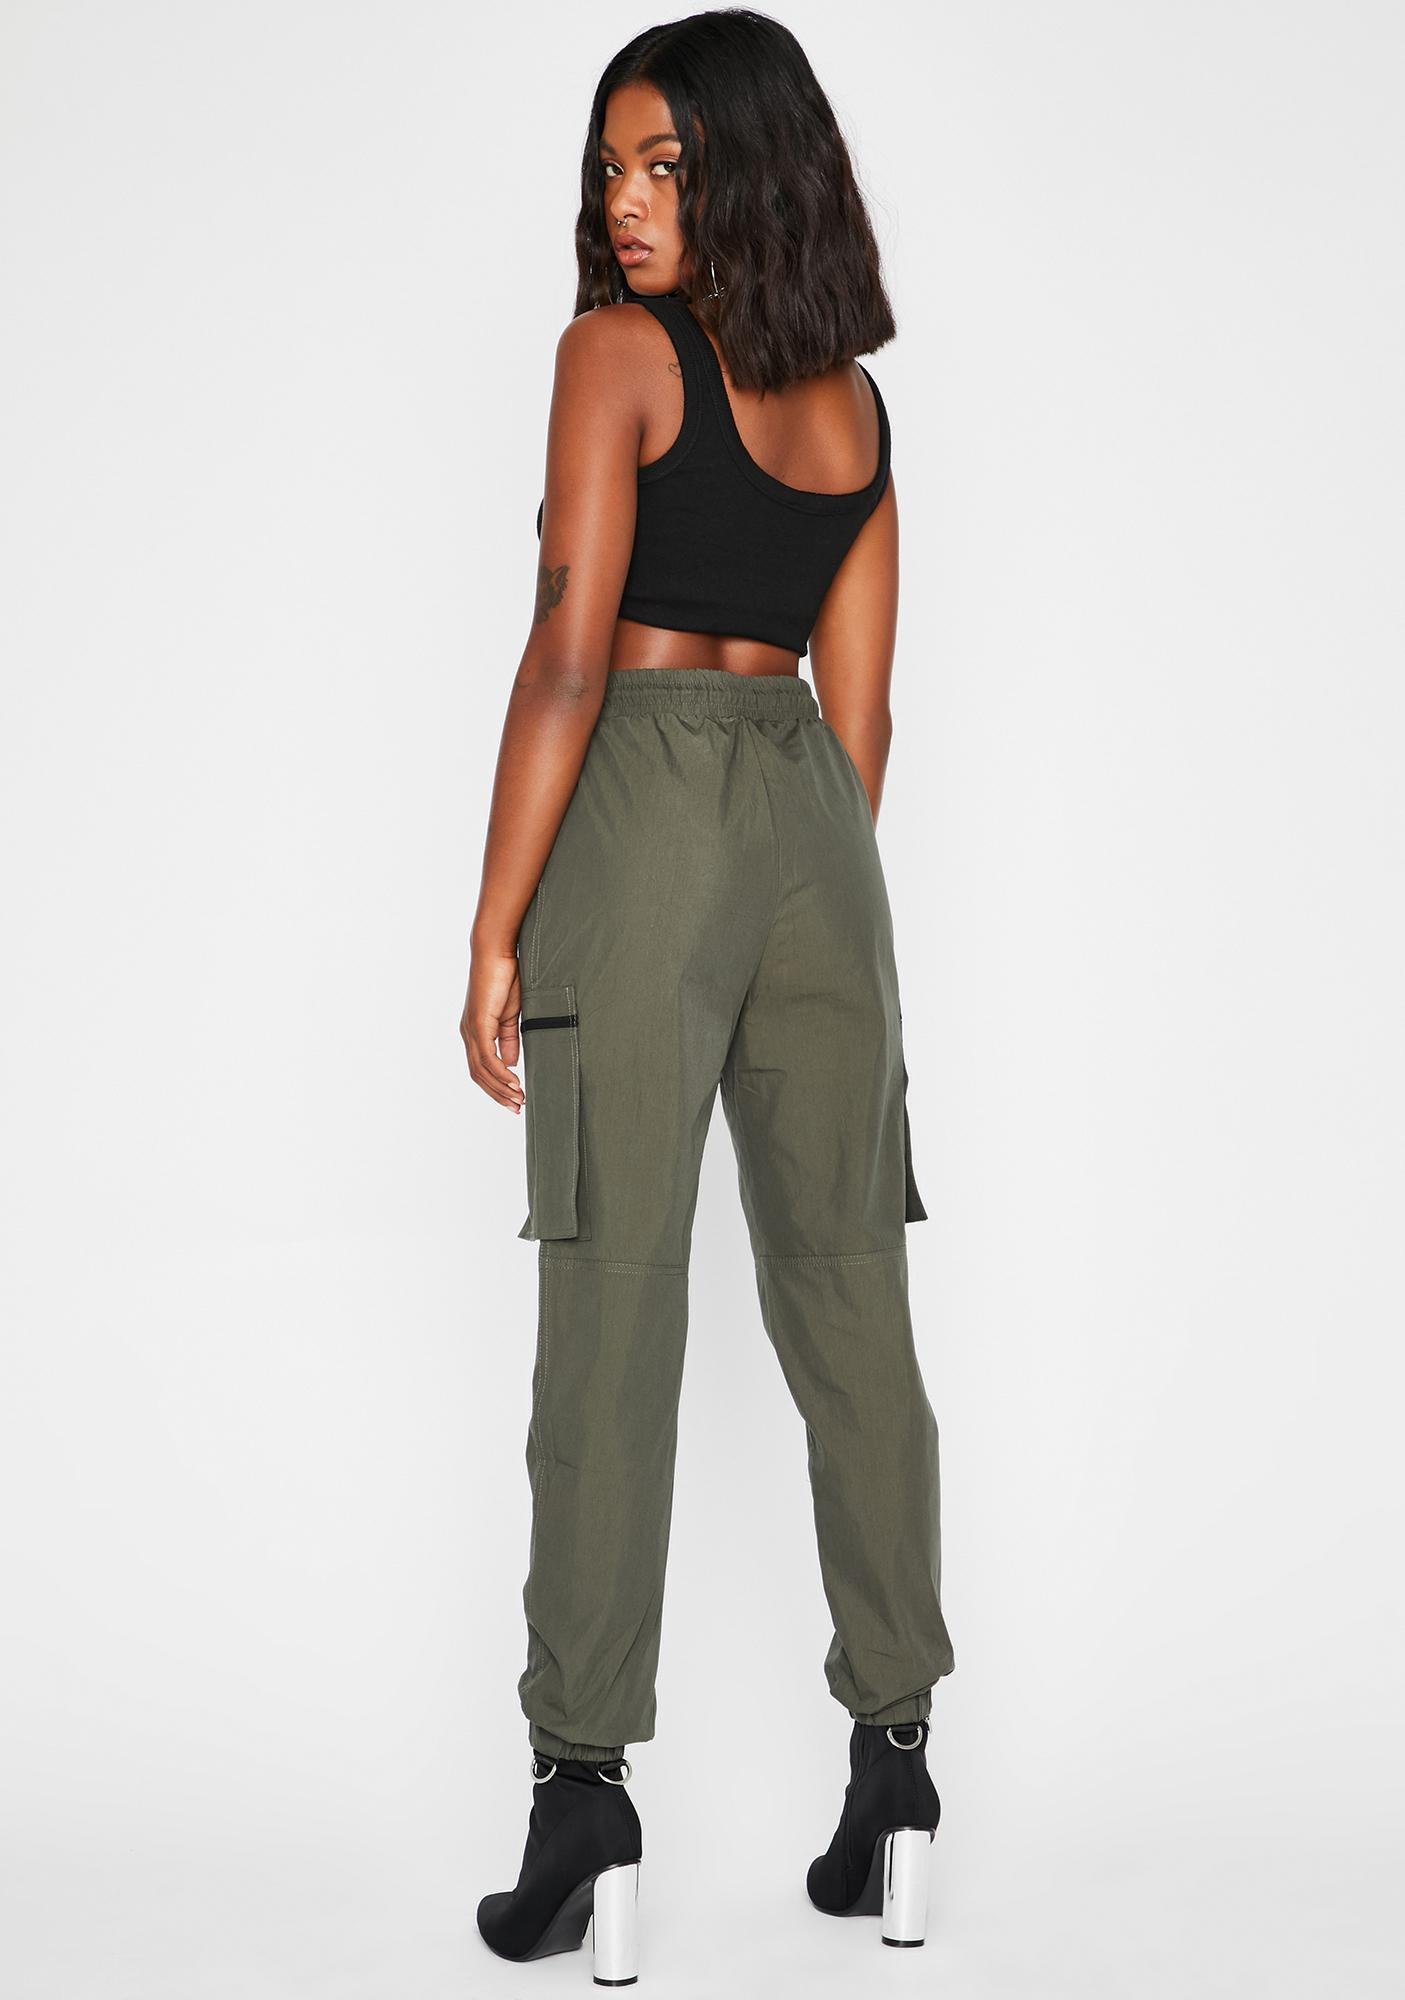 Take It Personal Cargo Joggers